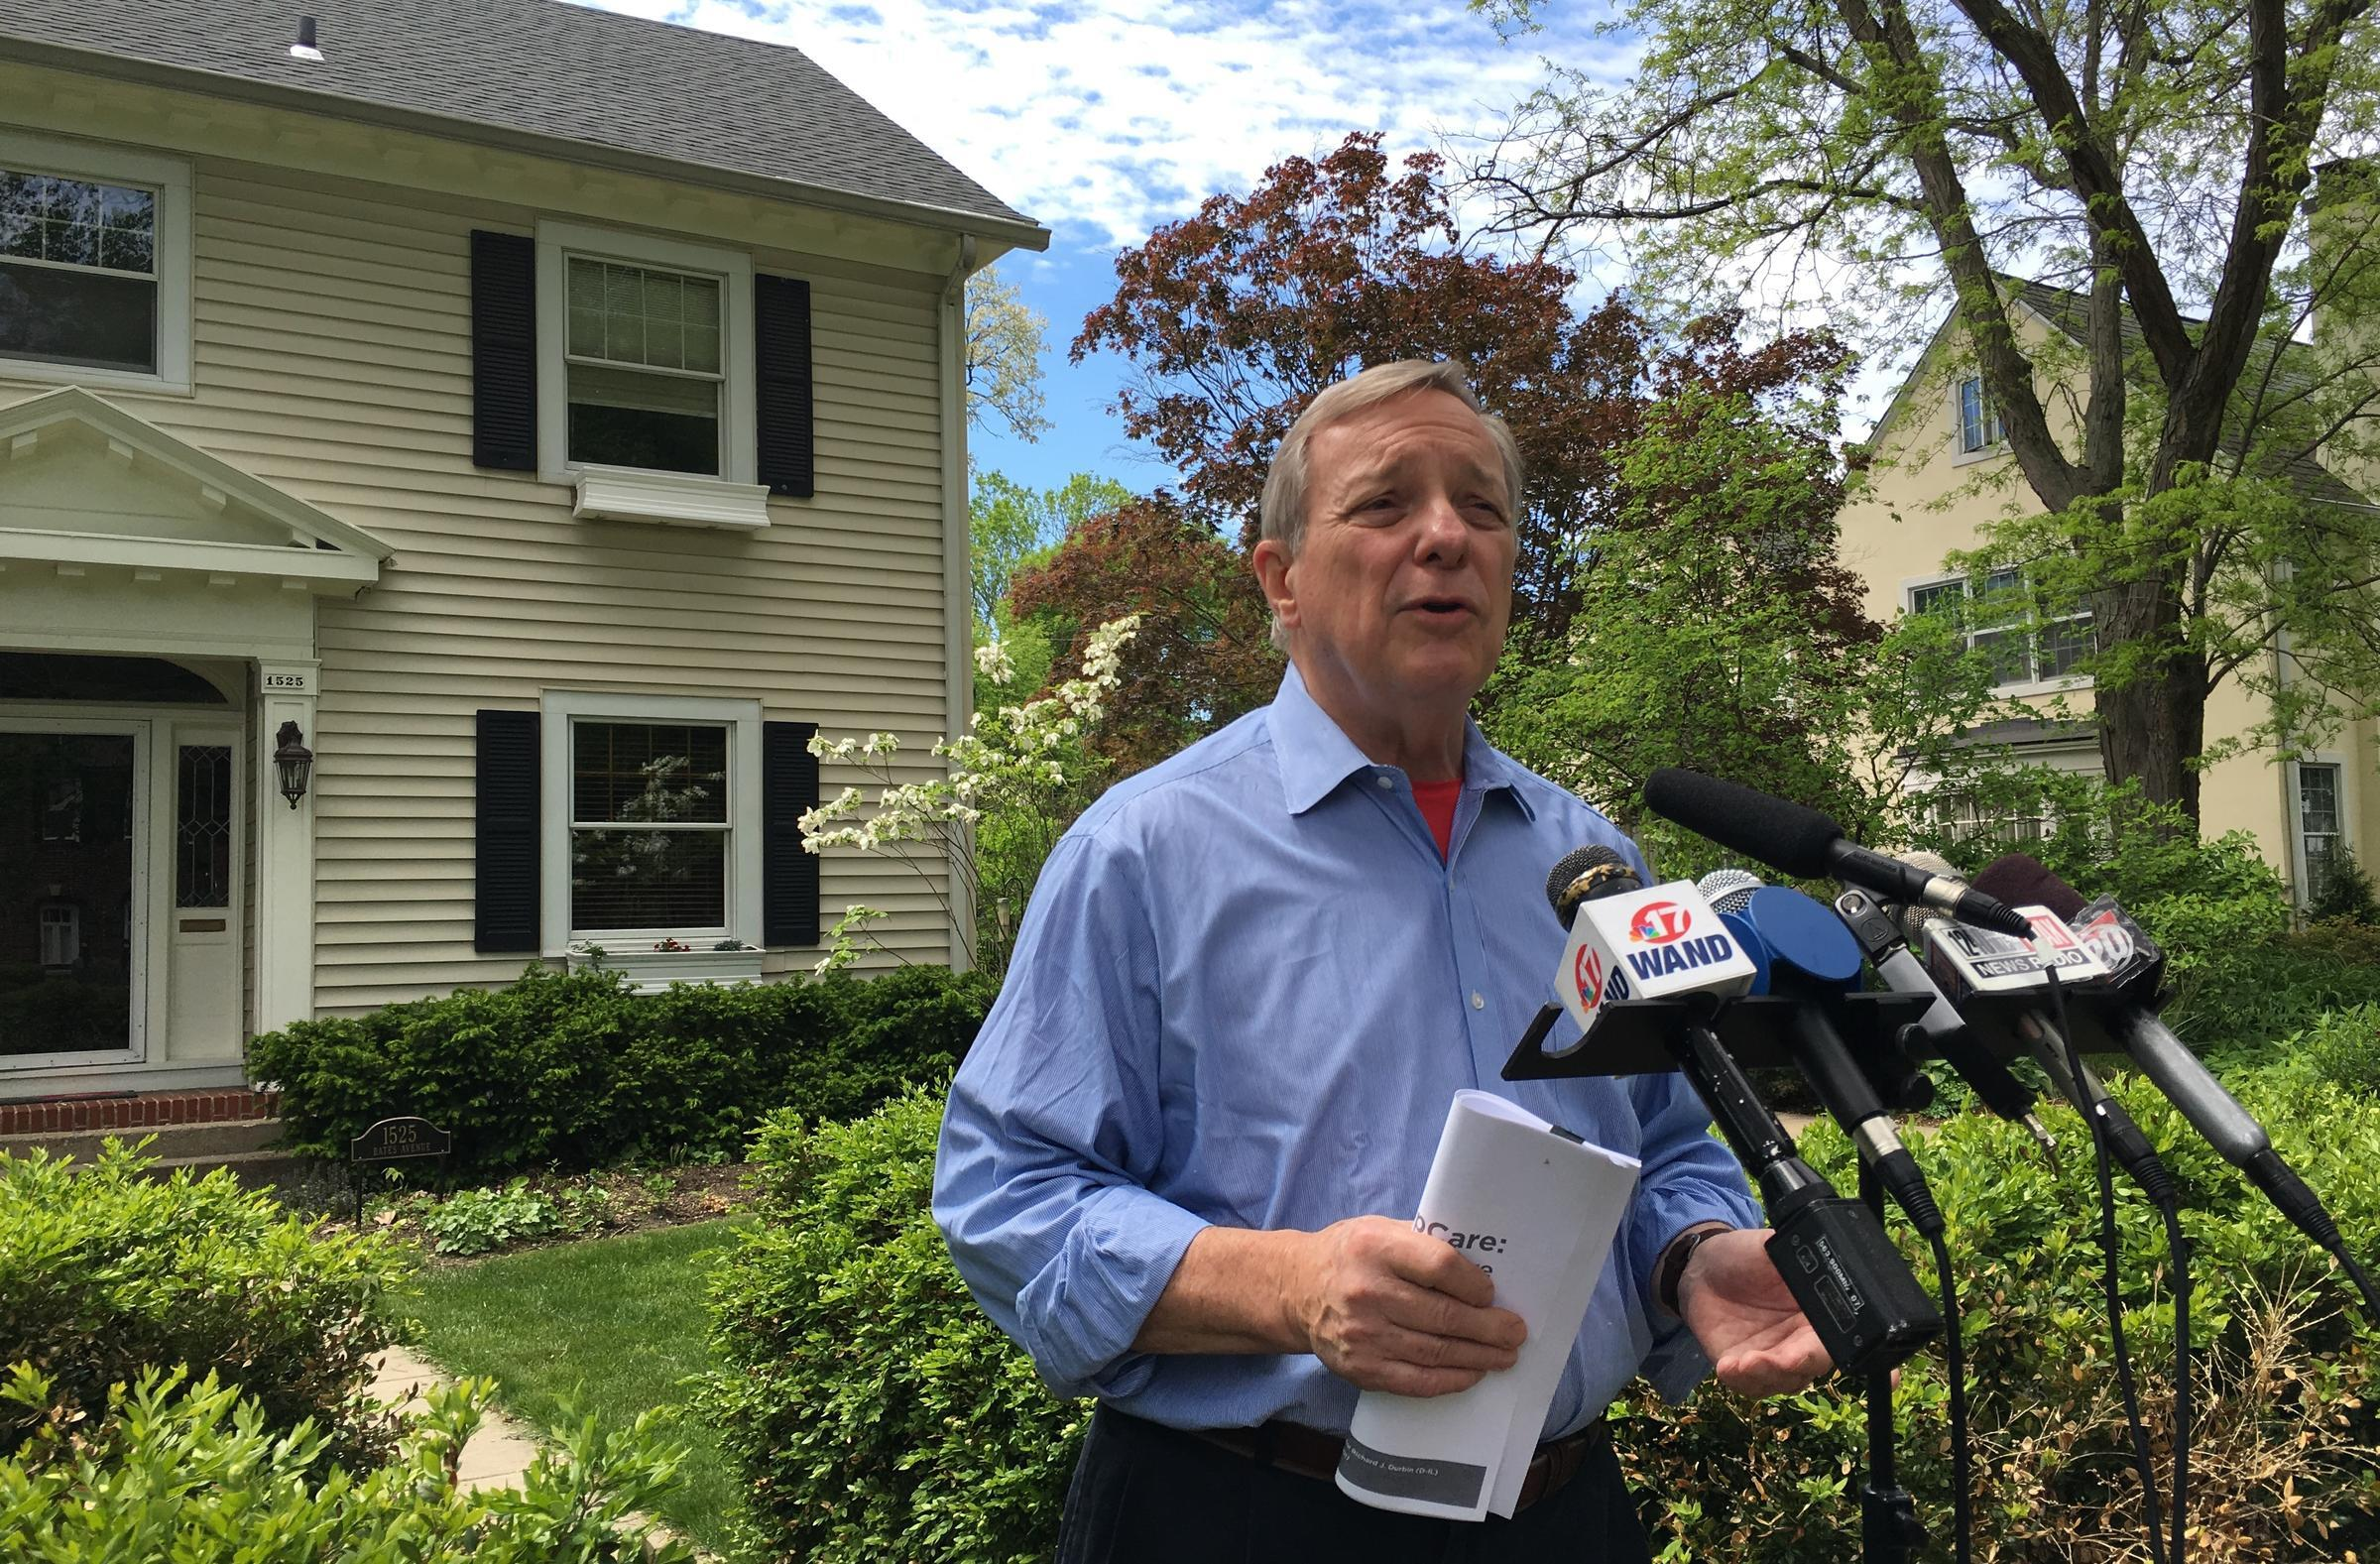 Illinois U.S. Senator Dick Durbin speaks to reporters outside his home in Springfield in this file photo from 2017.